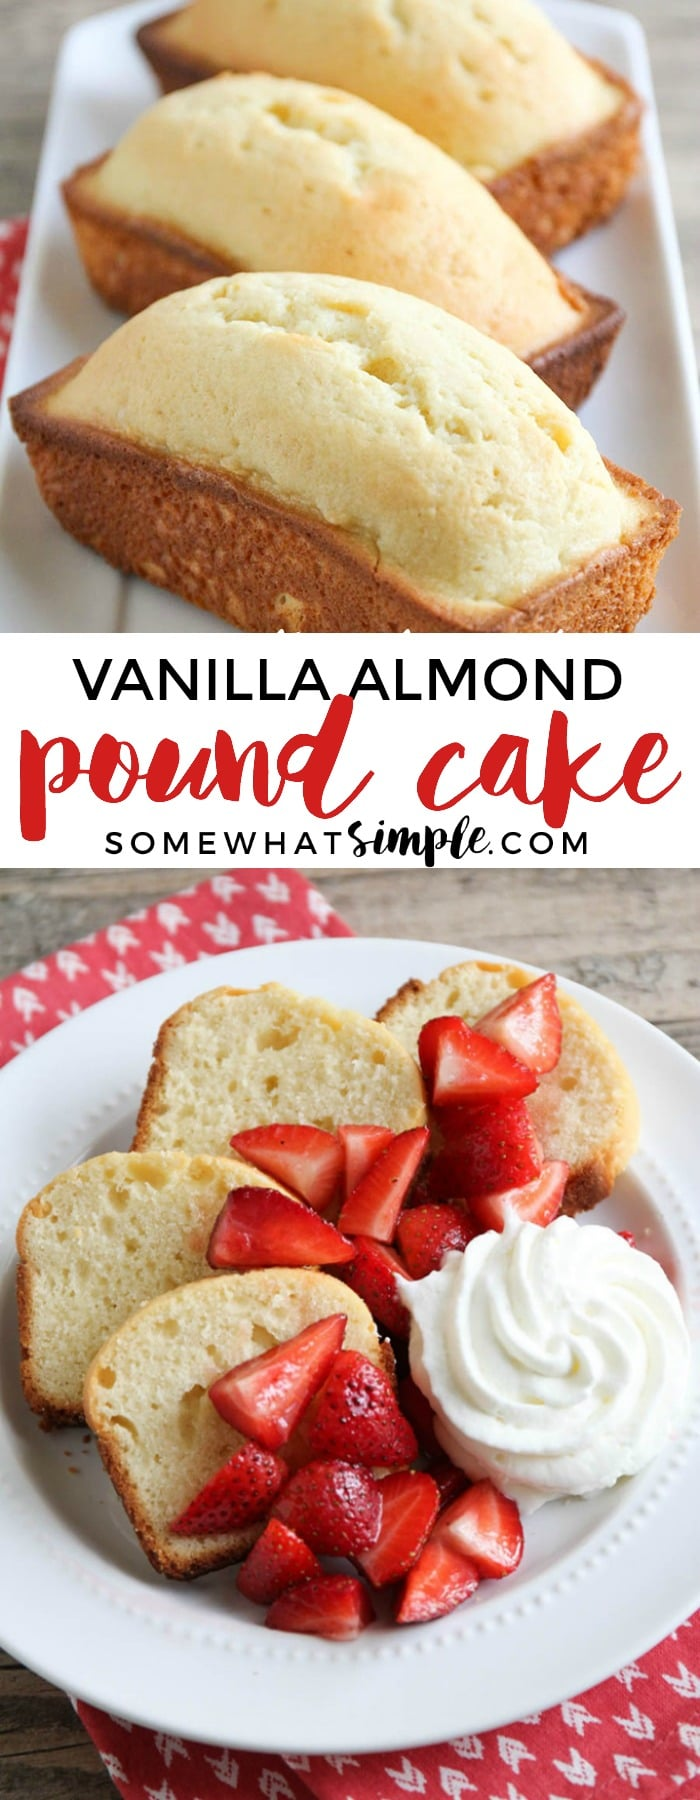 This recipe for vanilla almond pound cake is simple and easy to make using ingredients typically found in the house, and tastes fantastic!